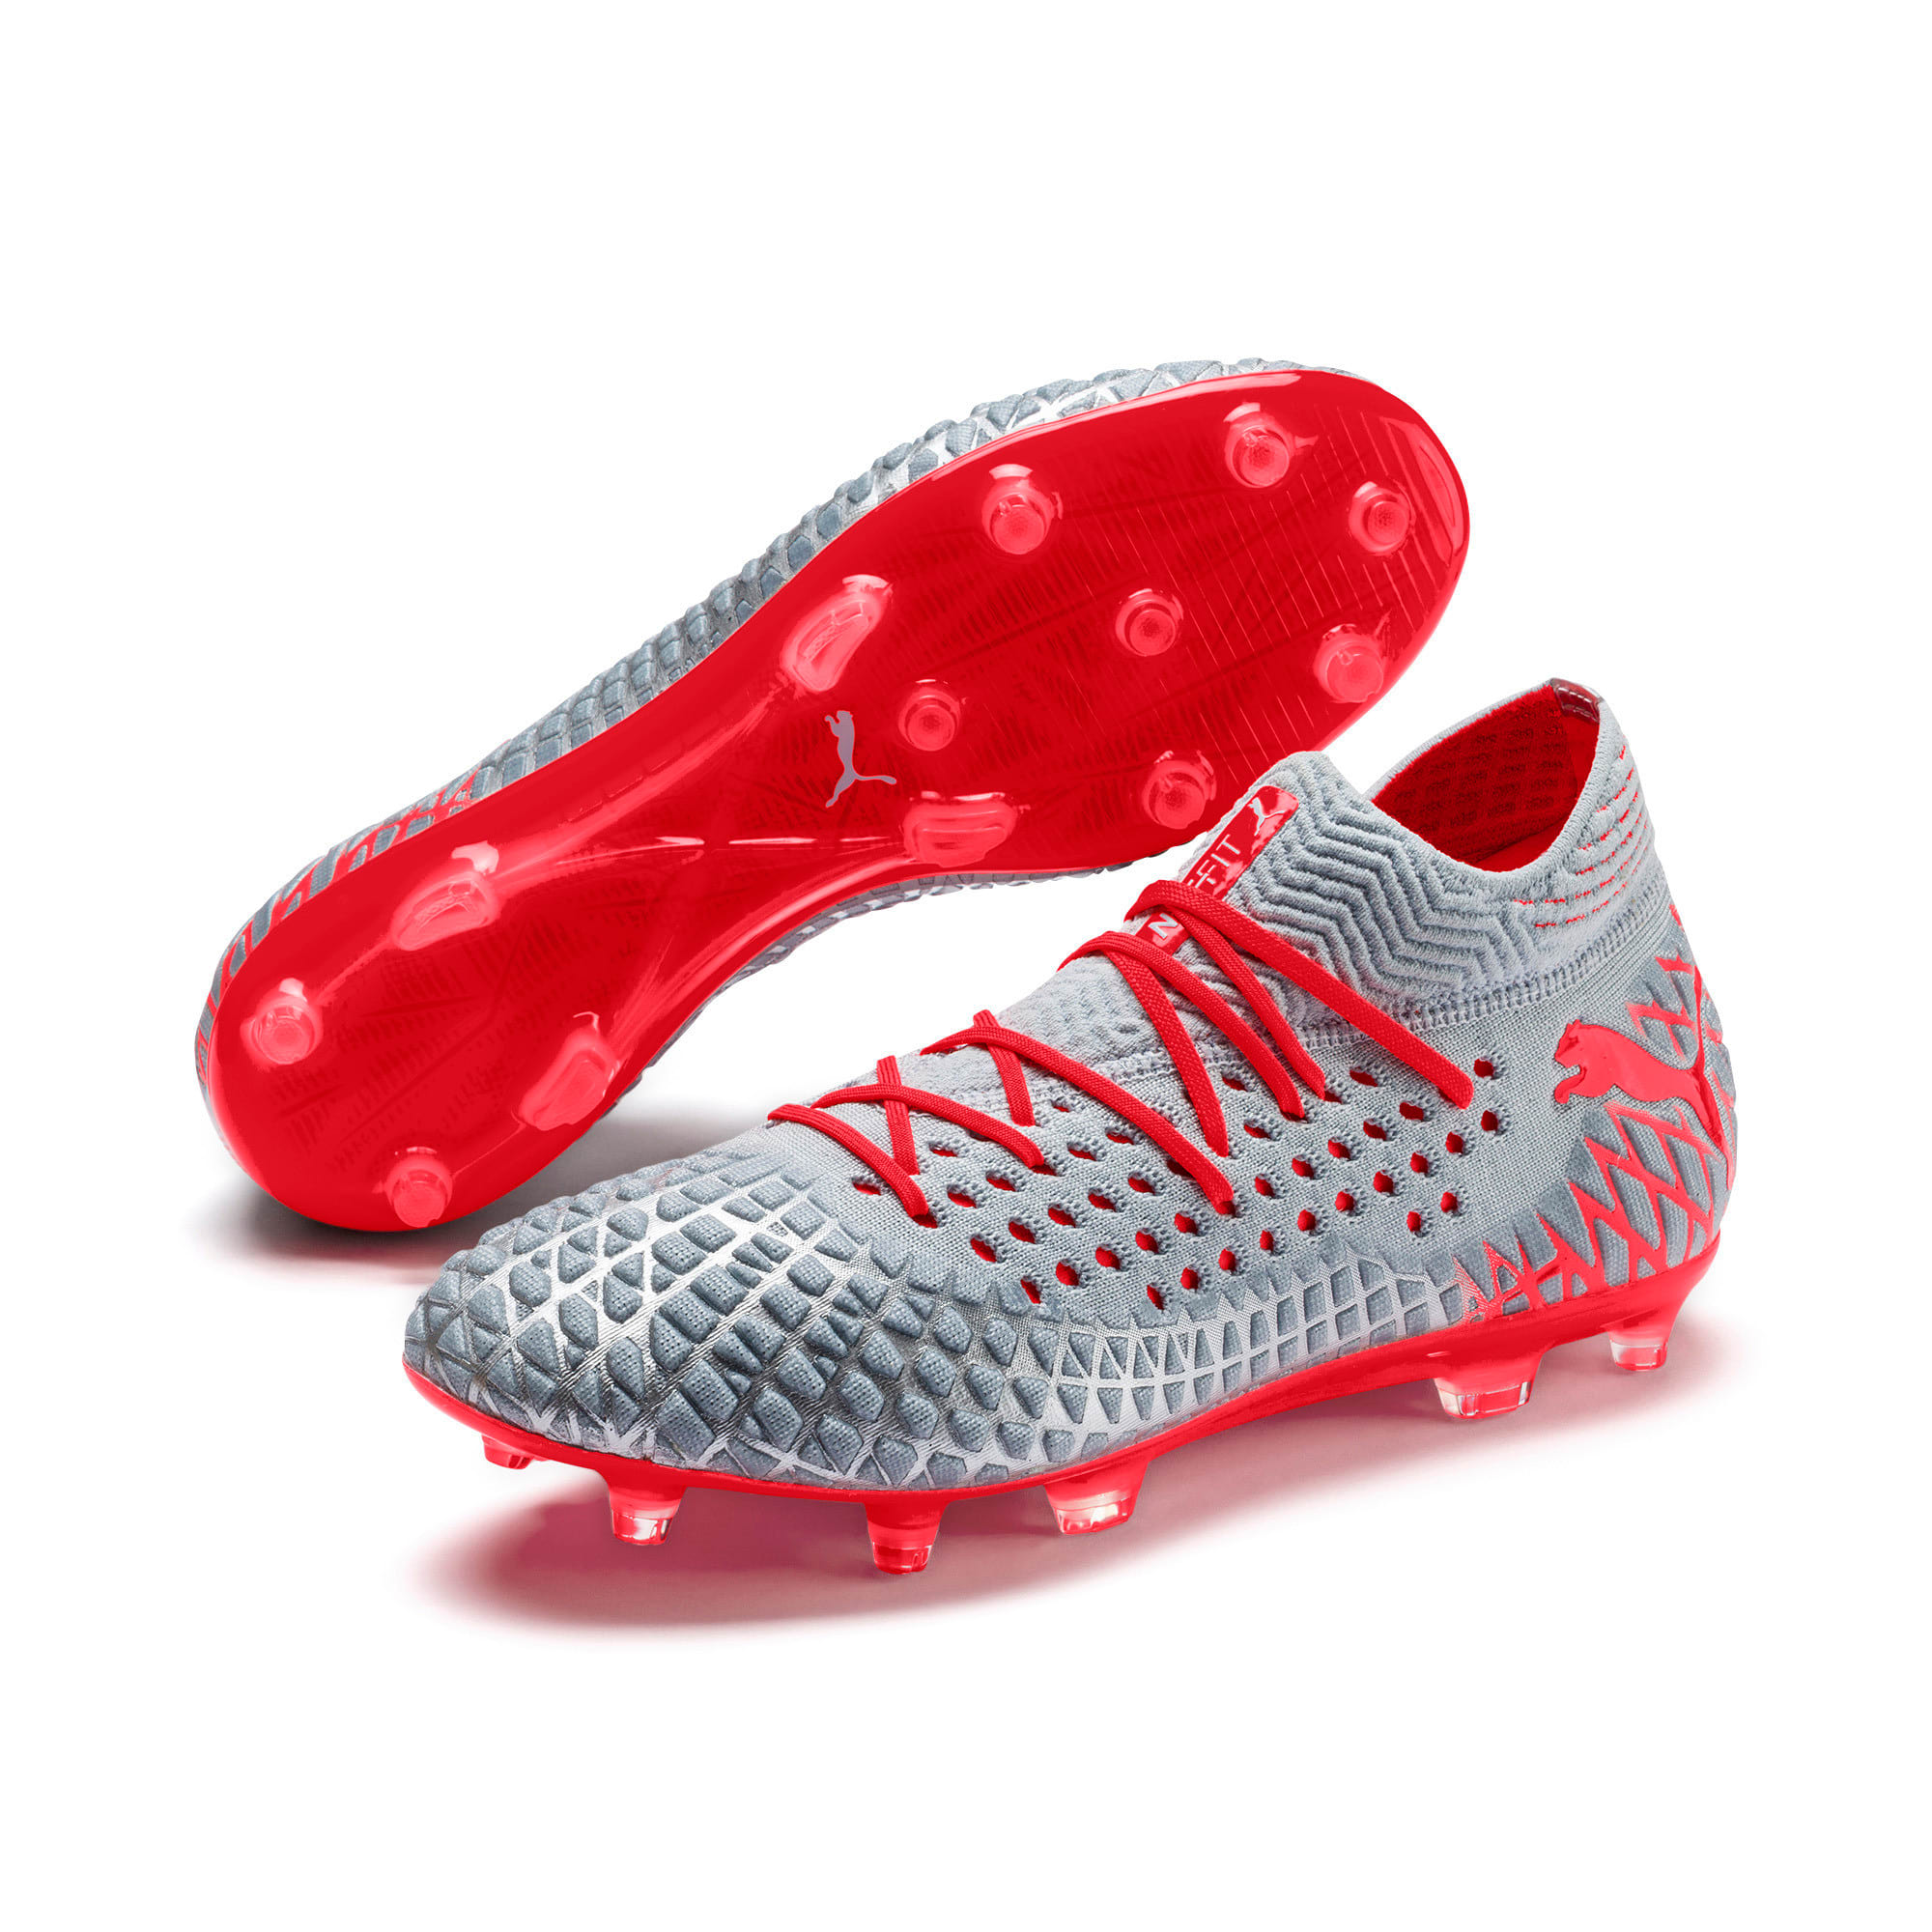 Thumbnail 3 of FUTURE 4.1 NETFIT FG/AG Men's Football Boots, Blue-Nrgy Red-High Risk Red, medium